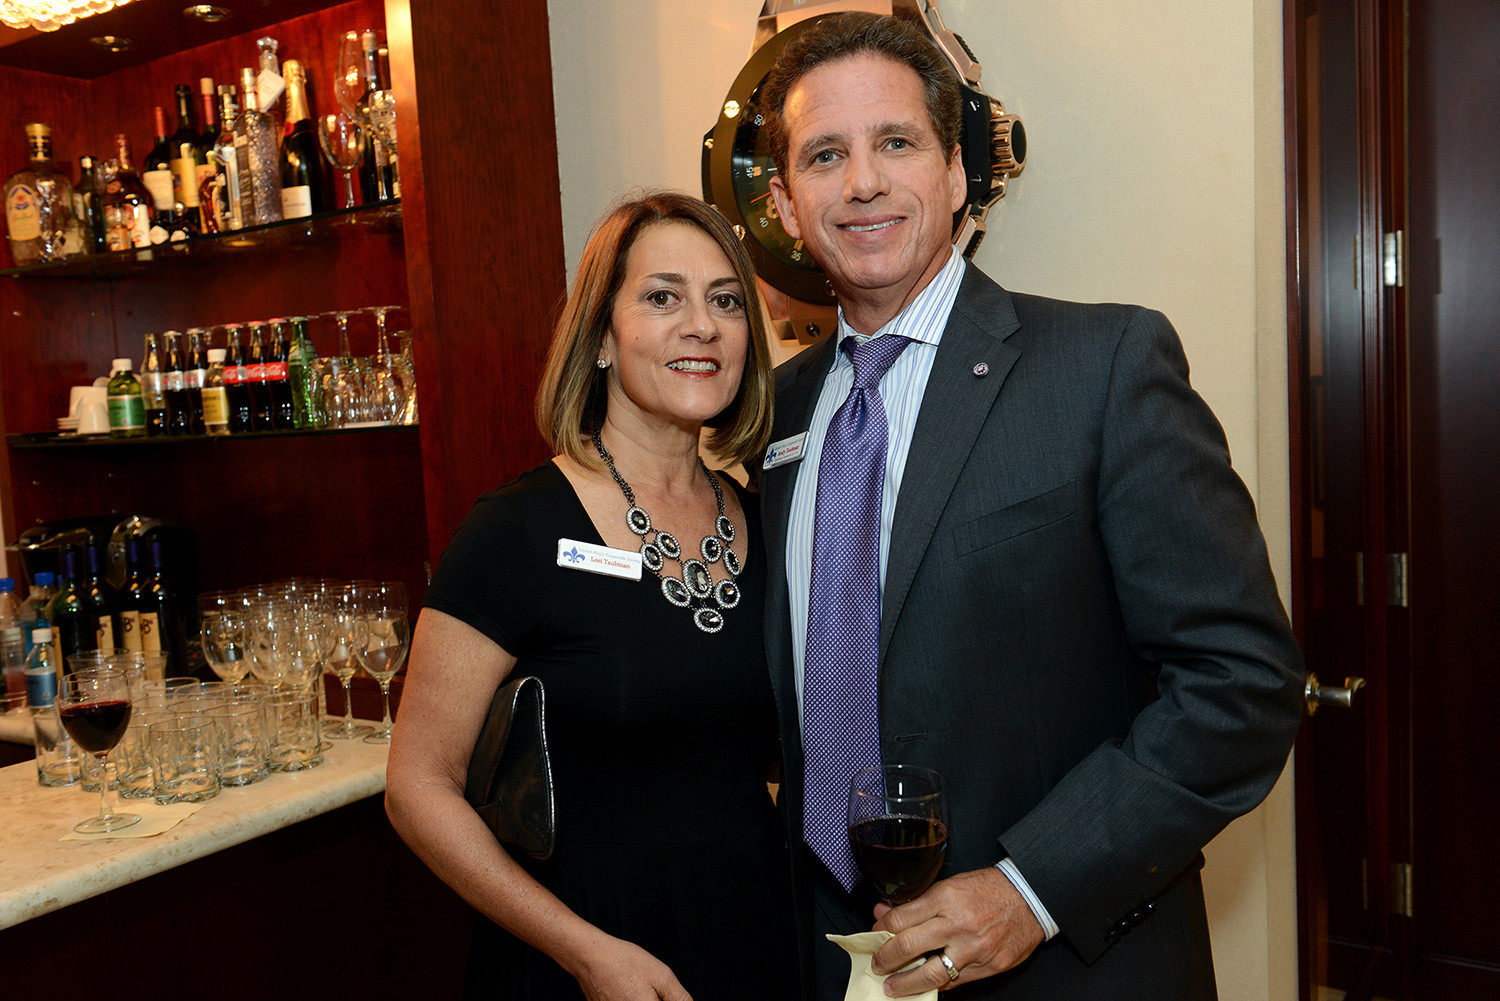 Society Scene photos - Lori and Andy Taubman, Entrepreneurial Services Principal at Kaufman Rossin & Co.